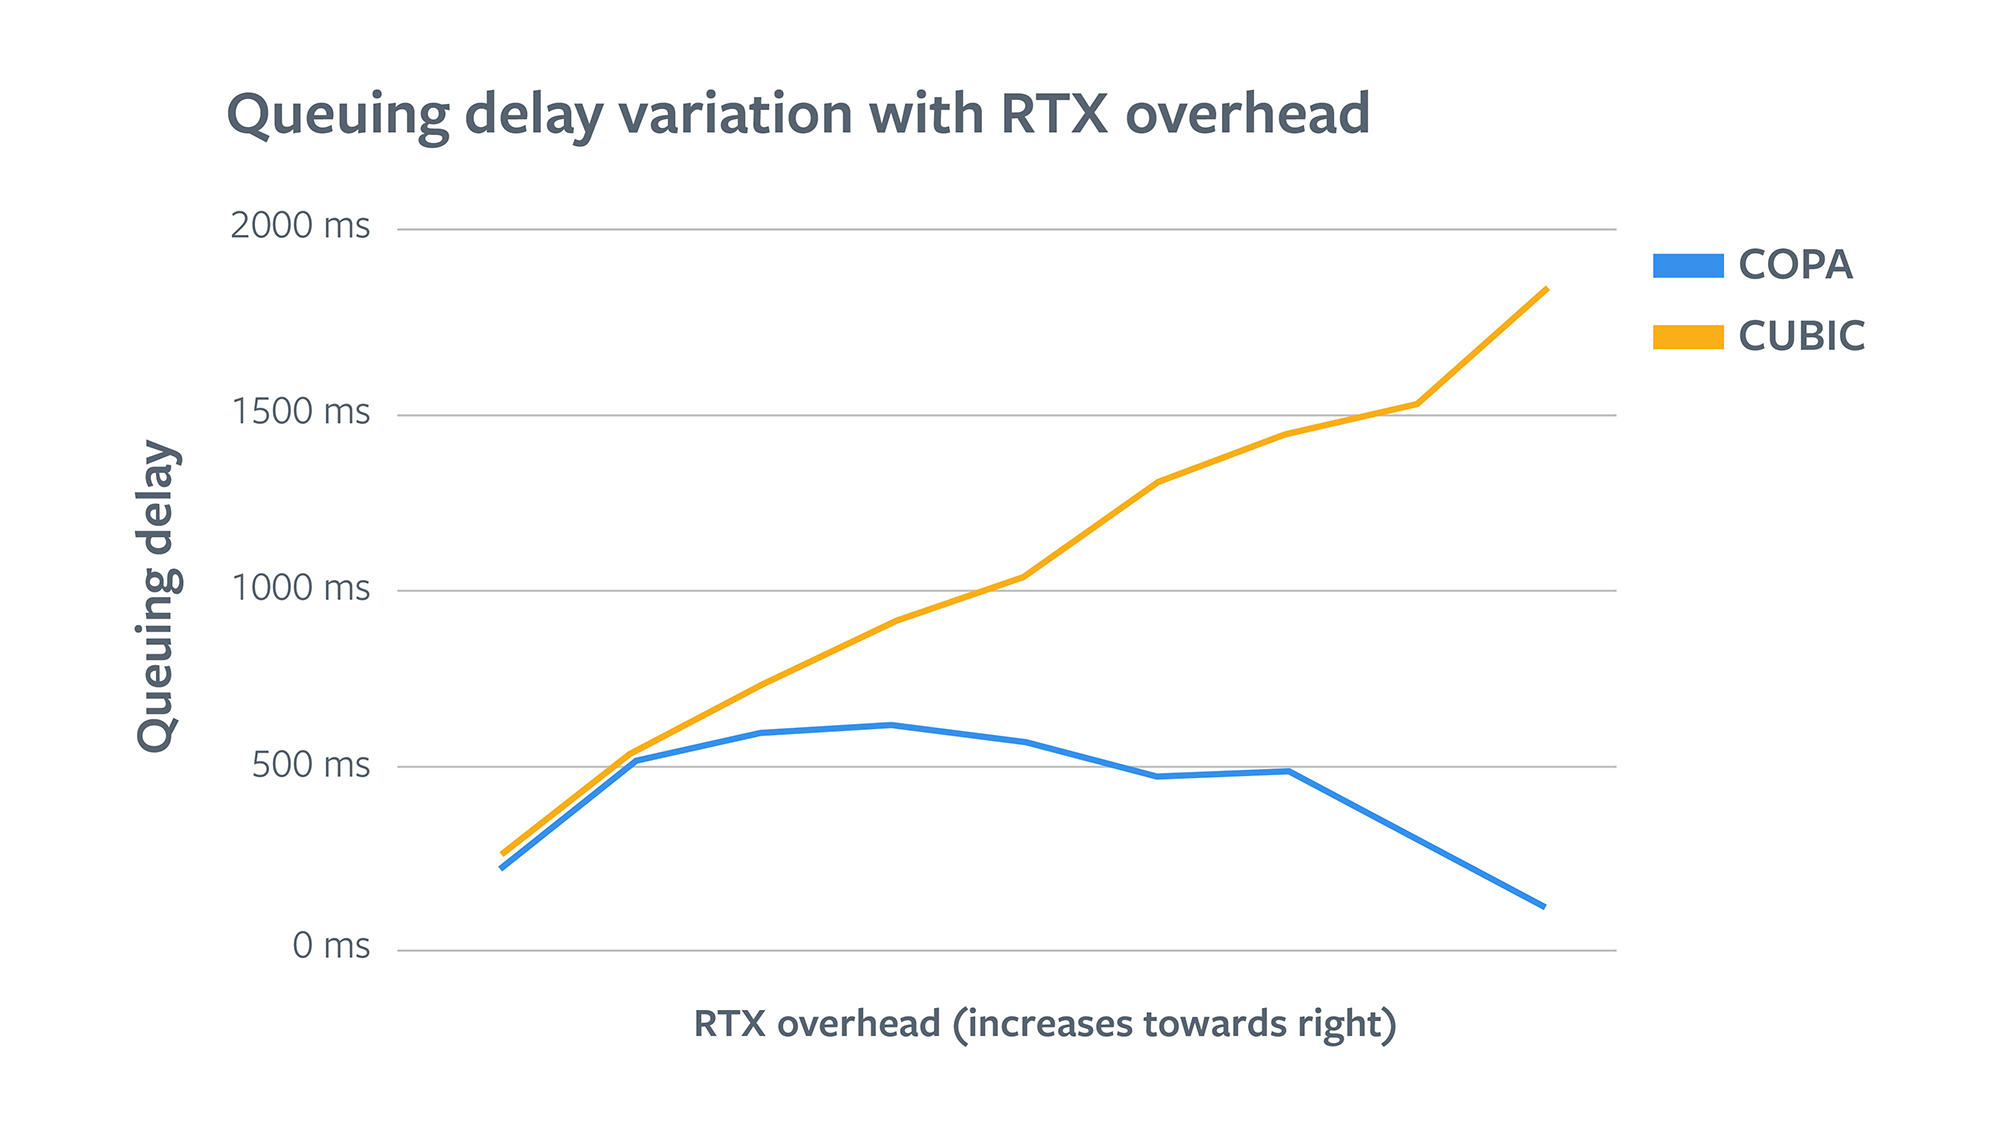 Queueing delay variation with RTX overhead